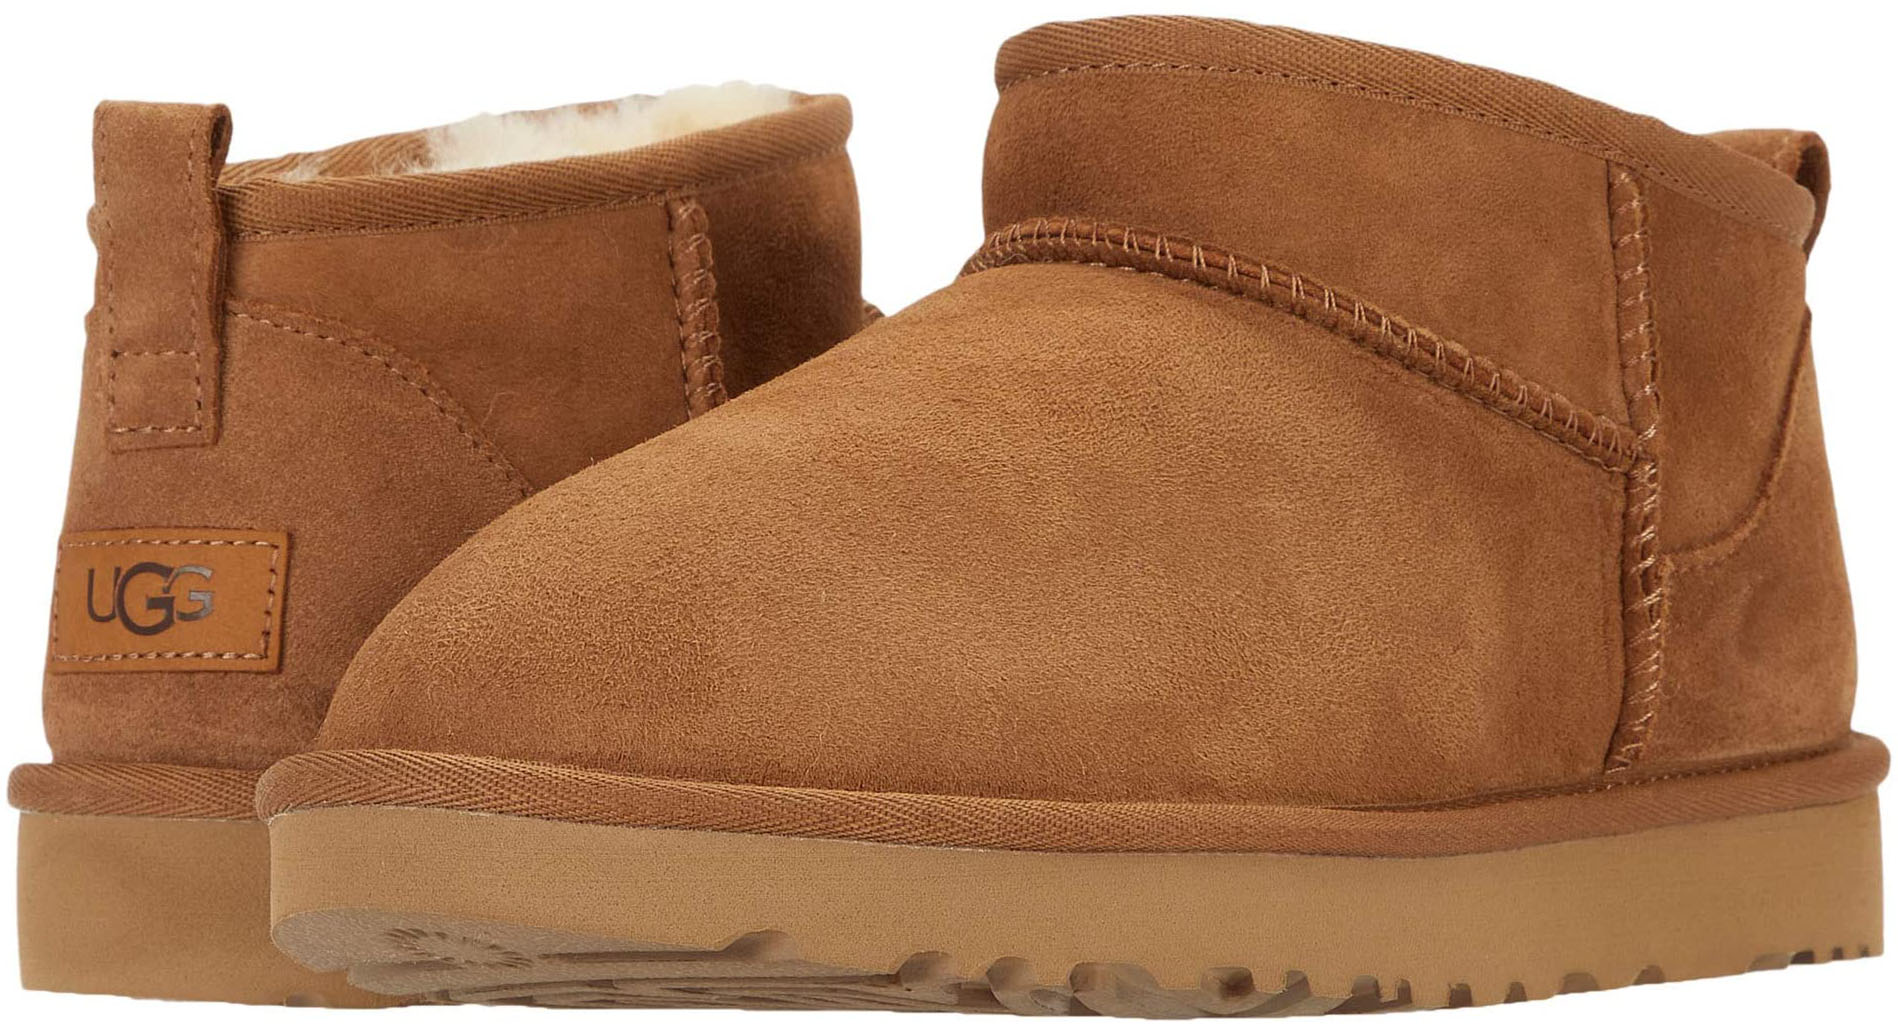 A cute and cozy slip-on bootie with water-repellent sheepskin upper and UGG Treadlite outsole